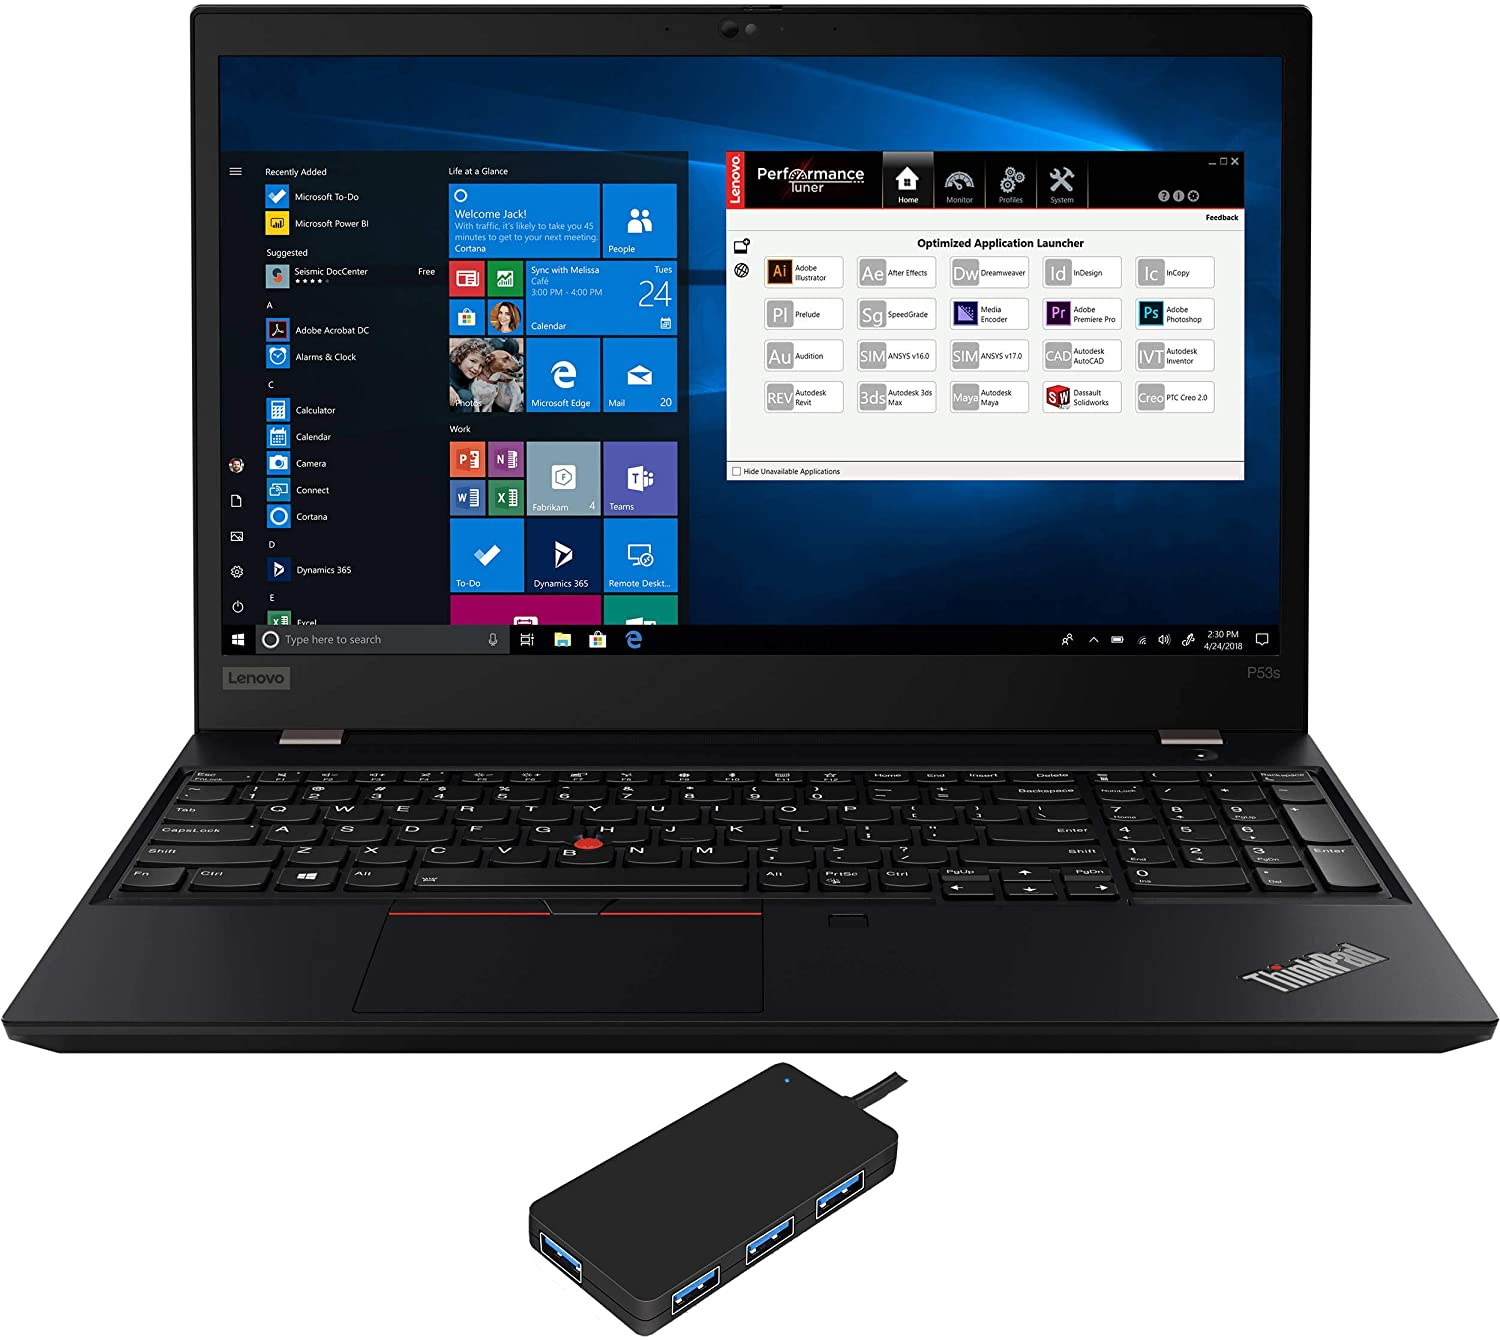 "Lenovo ThinkPad P53s Workstation Laptop (Intel i7-8565U 4-Core, 16GB RAM, 1TB PCIe SSD, Quadro P520, 15.6"" Full HD (1920x1080), Fingerprint, WiFi, Bluetooth, Webcam, Win 10 Pro) with USB3.0 Hub"